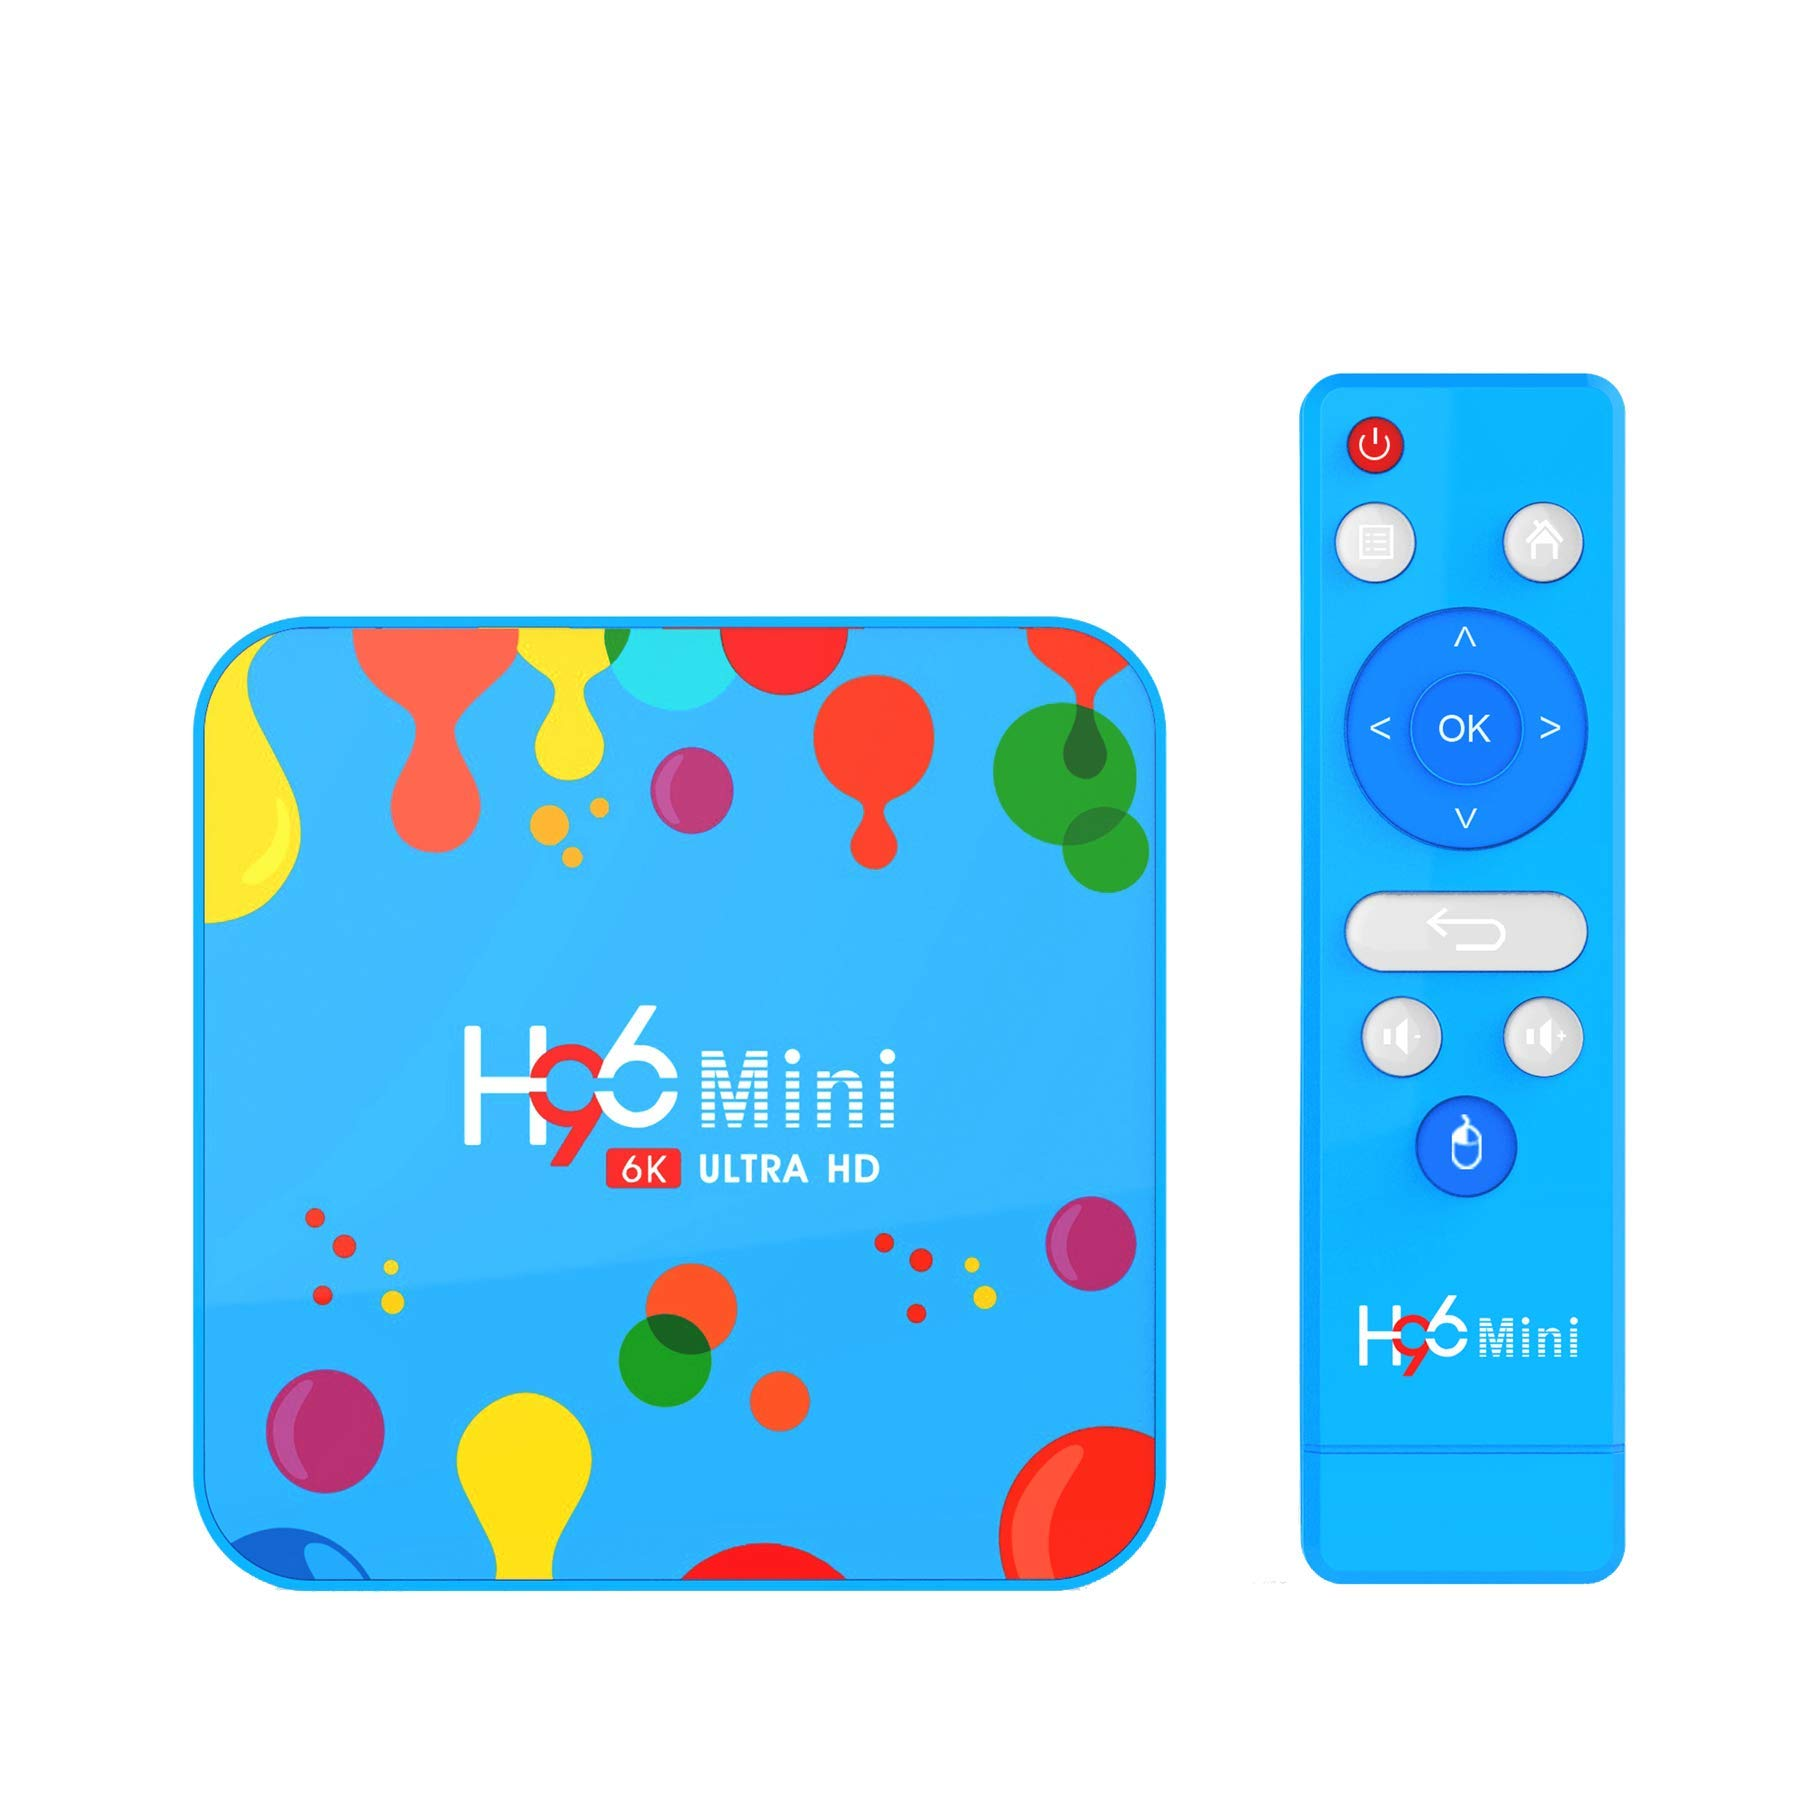 DroiX H96 Mini Android 9 Pie Smart TV Box; Procesador Allwinner H6 Salida de Video de 6K, 4GB de RAM, 128GB de ROM, Wi-Fi de Doble Banda, BT. Android Box Mini PC: